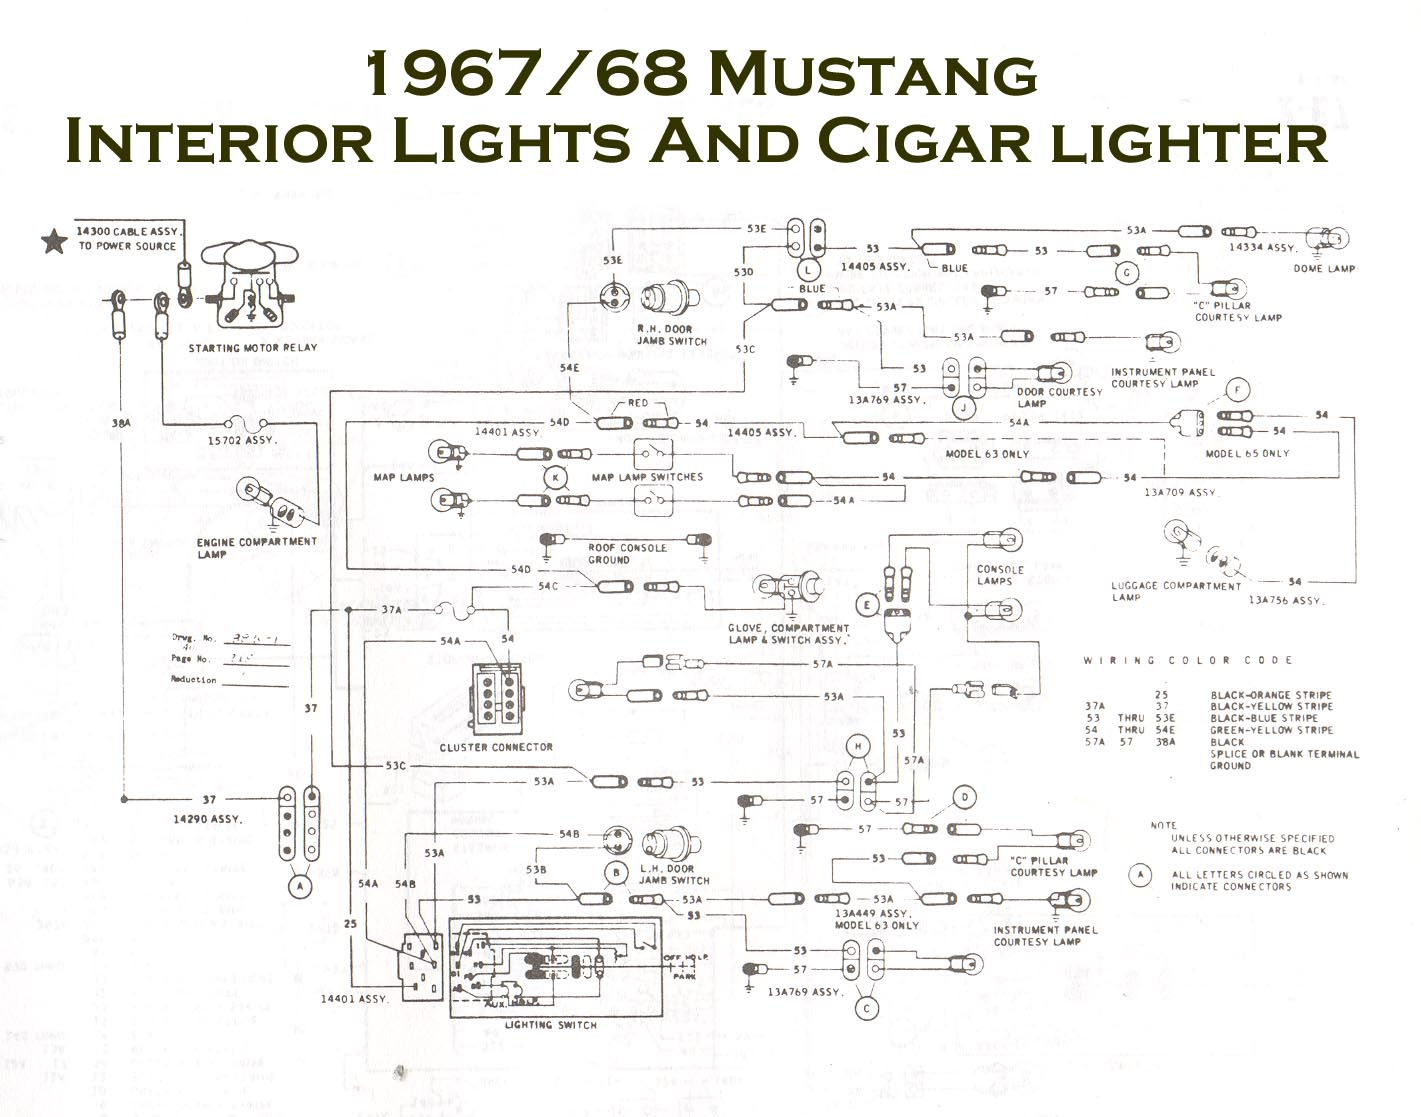 1967 68_console_wiring_diagram vintage mustang wiring diagrams 1967 mustang wiring diagram at alyssarenee.co